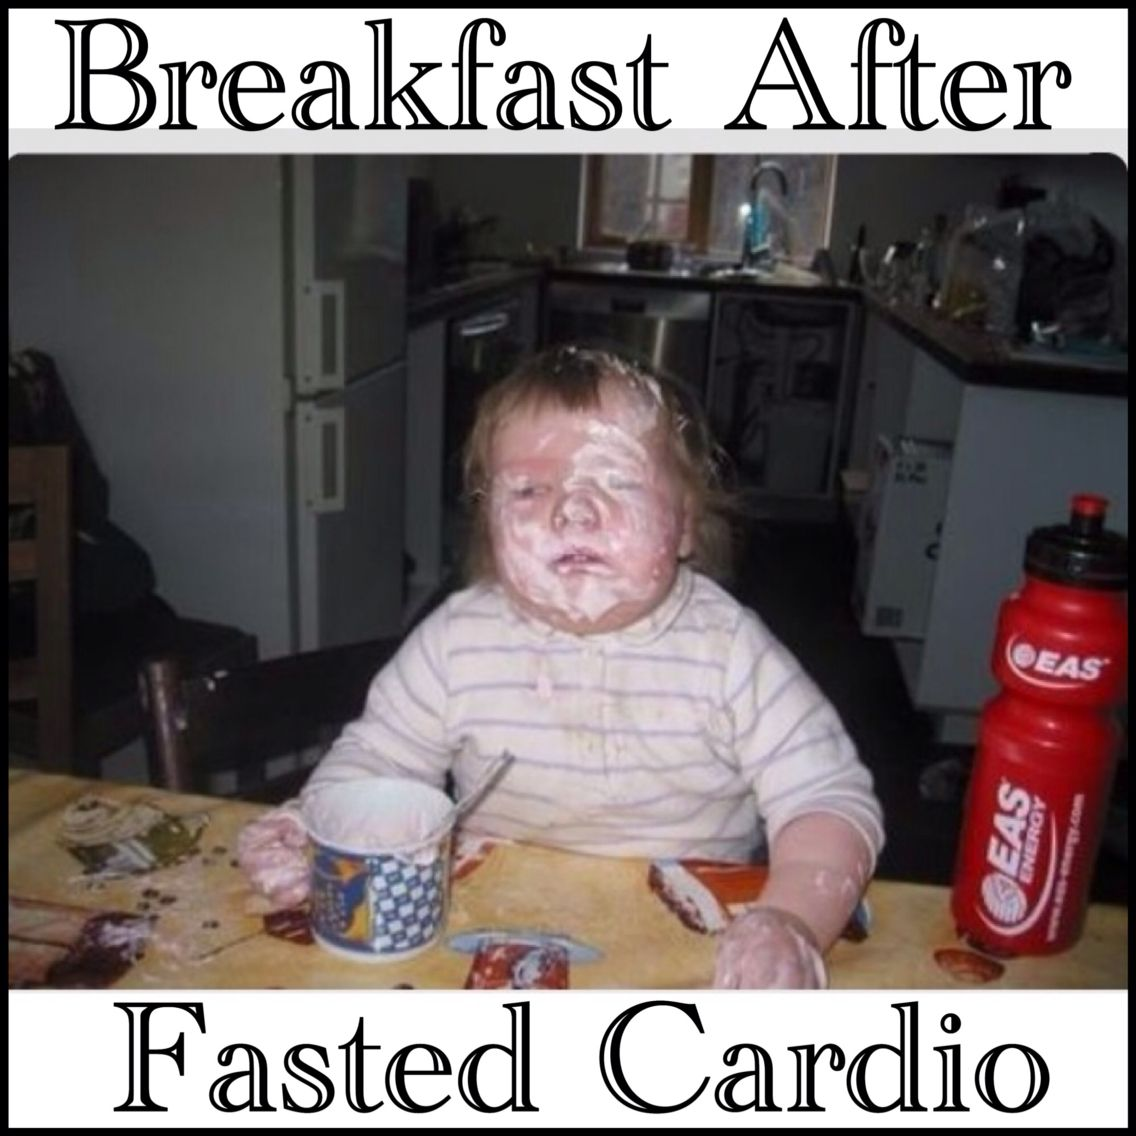 Fasted cardio fitness